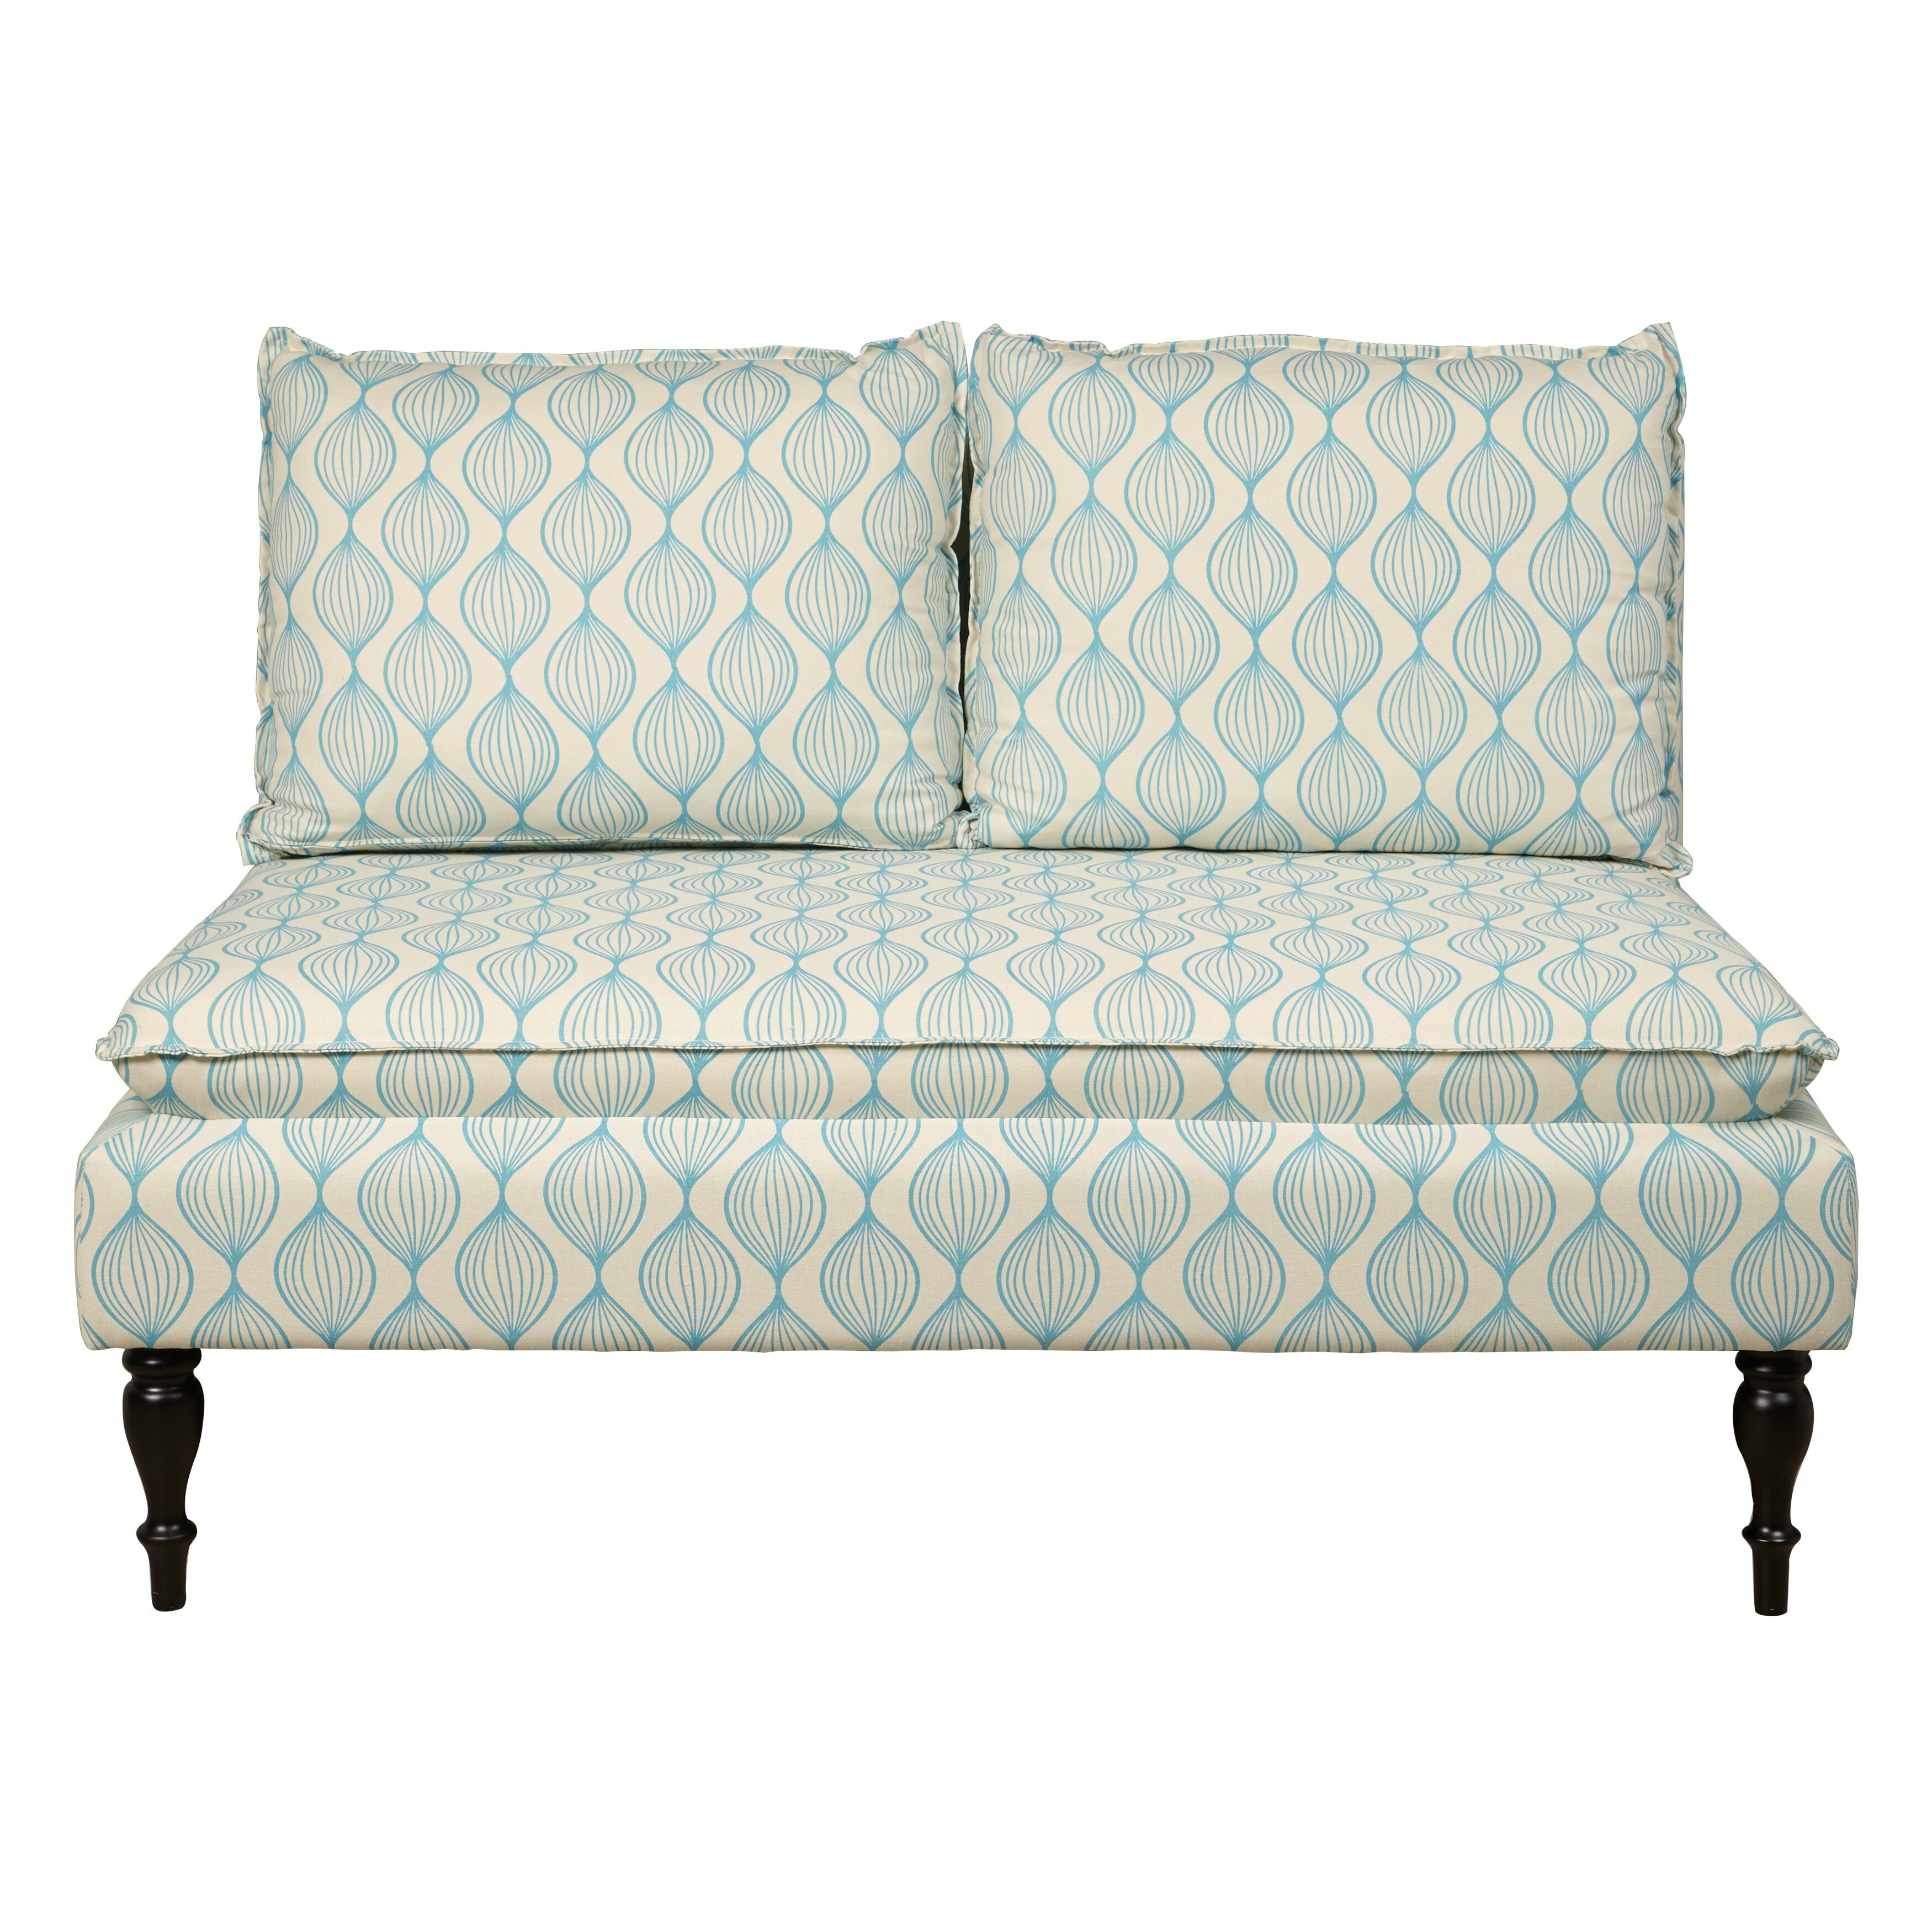 Restaurant Banquettes For Sale: Upholstered Graphic Print Banquette Sofa